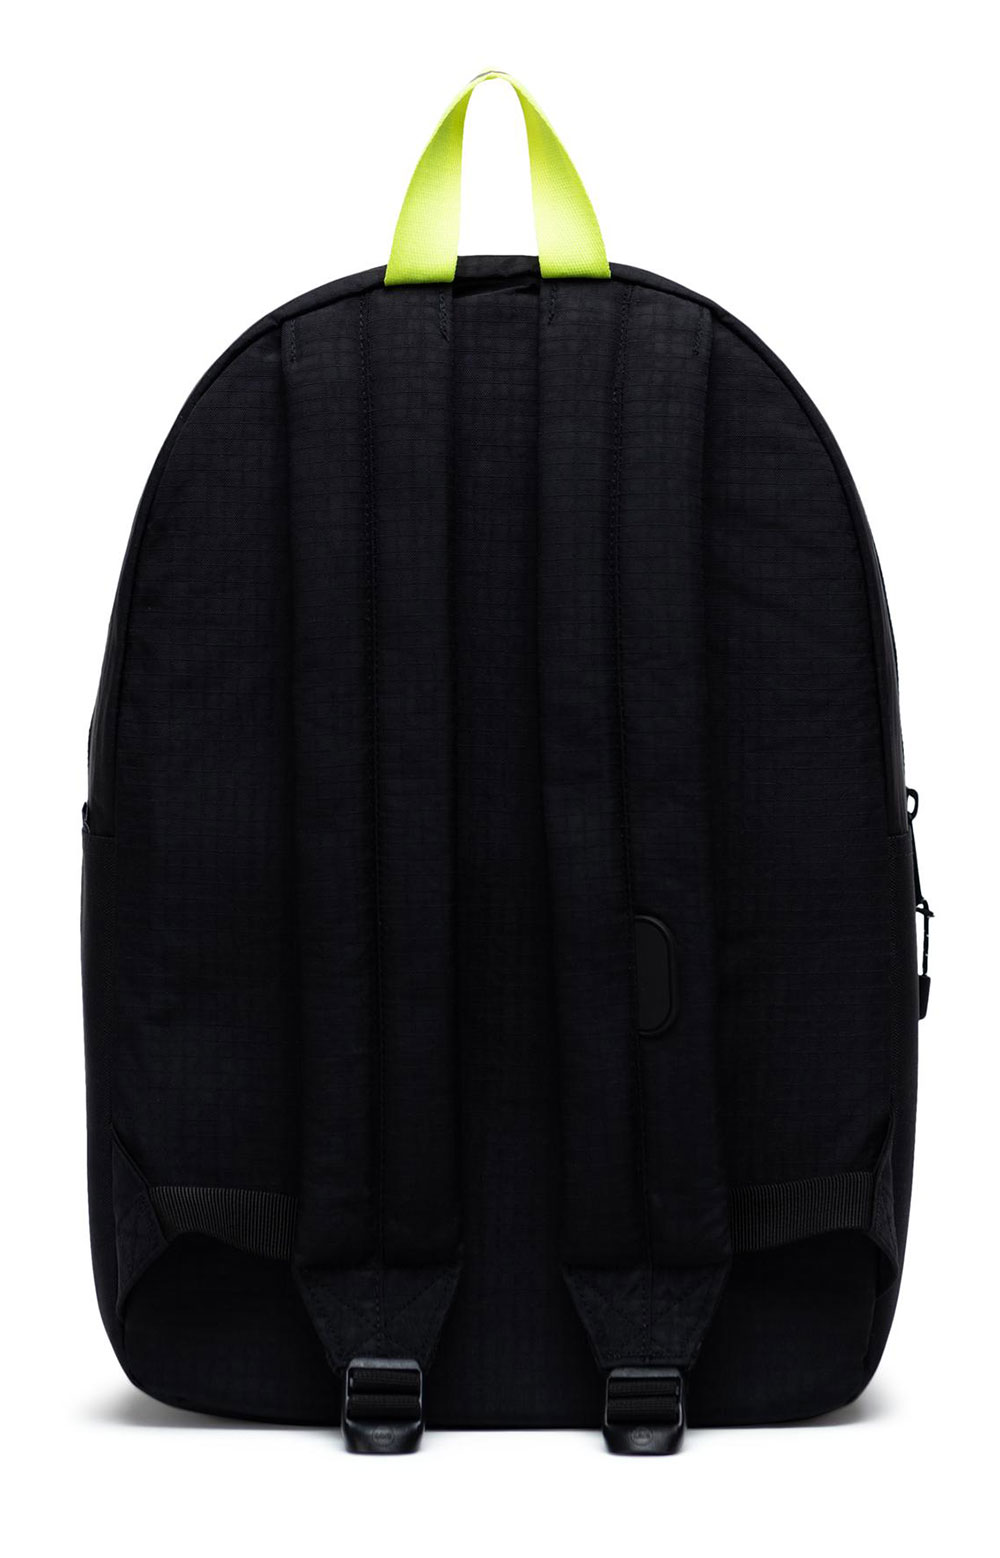 Settlement Backpack - Black Enzyme Ripstop/Black/Safety Yellow 5